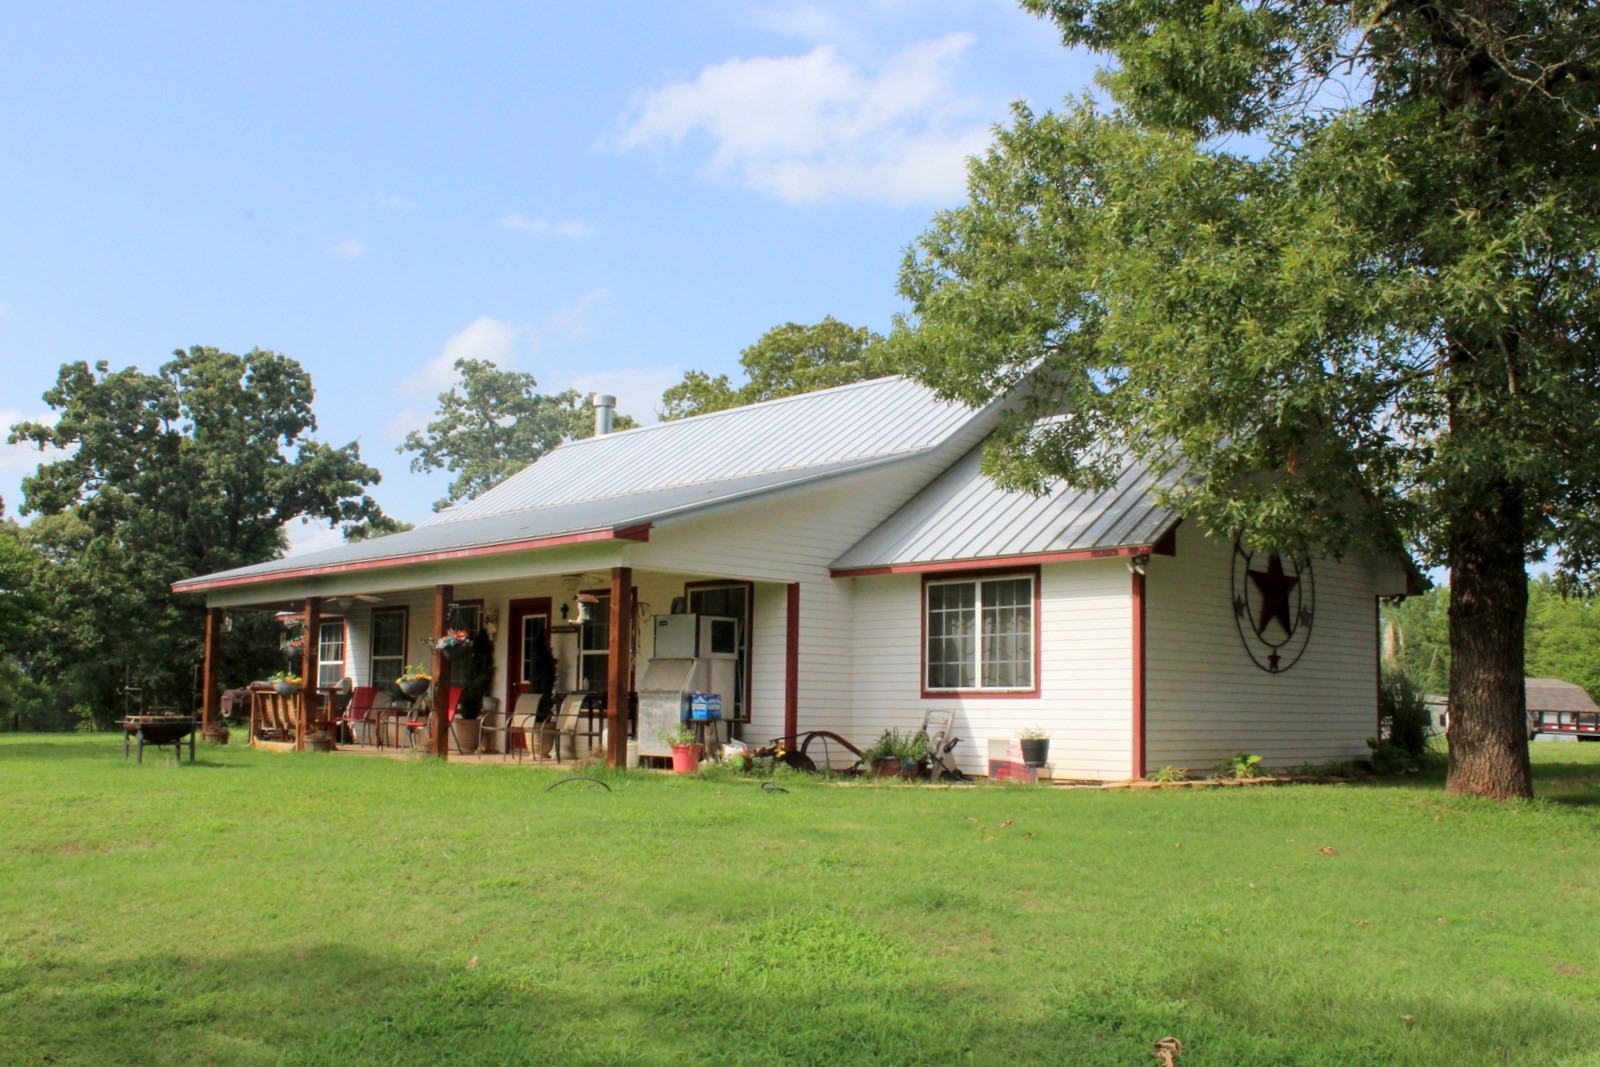 EAST TEXAS LAND FOR SALE - COUNTRY HOME - WINNSBORO, TX